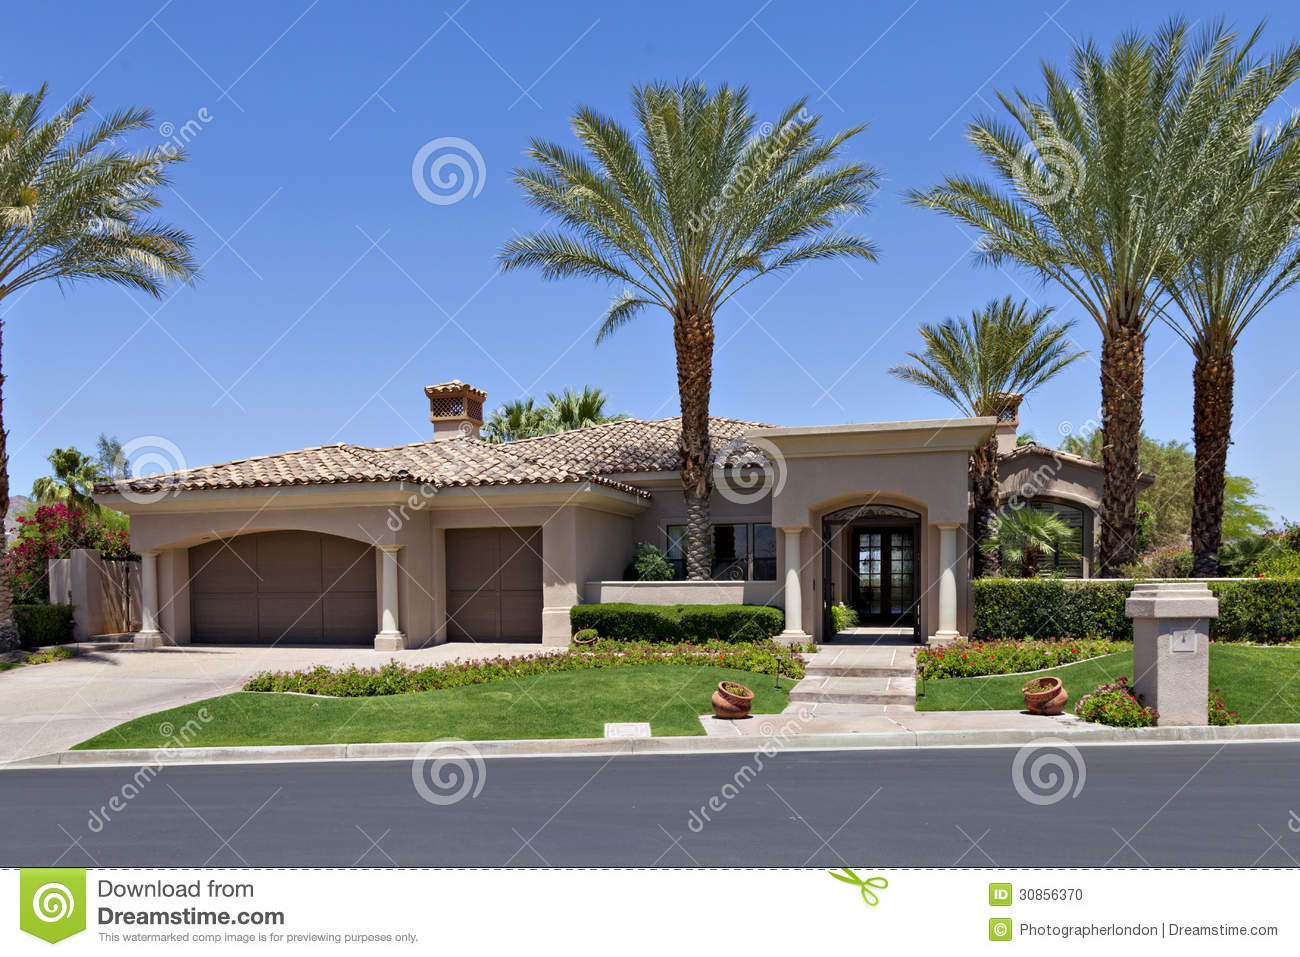 Entr e un bel ext rieur californien de maison photo stock image 30856370 - Photos entrees maisons ...